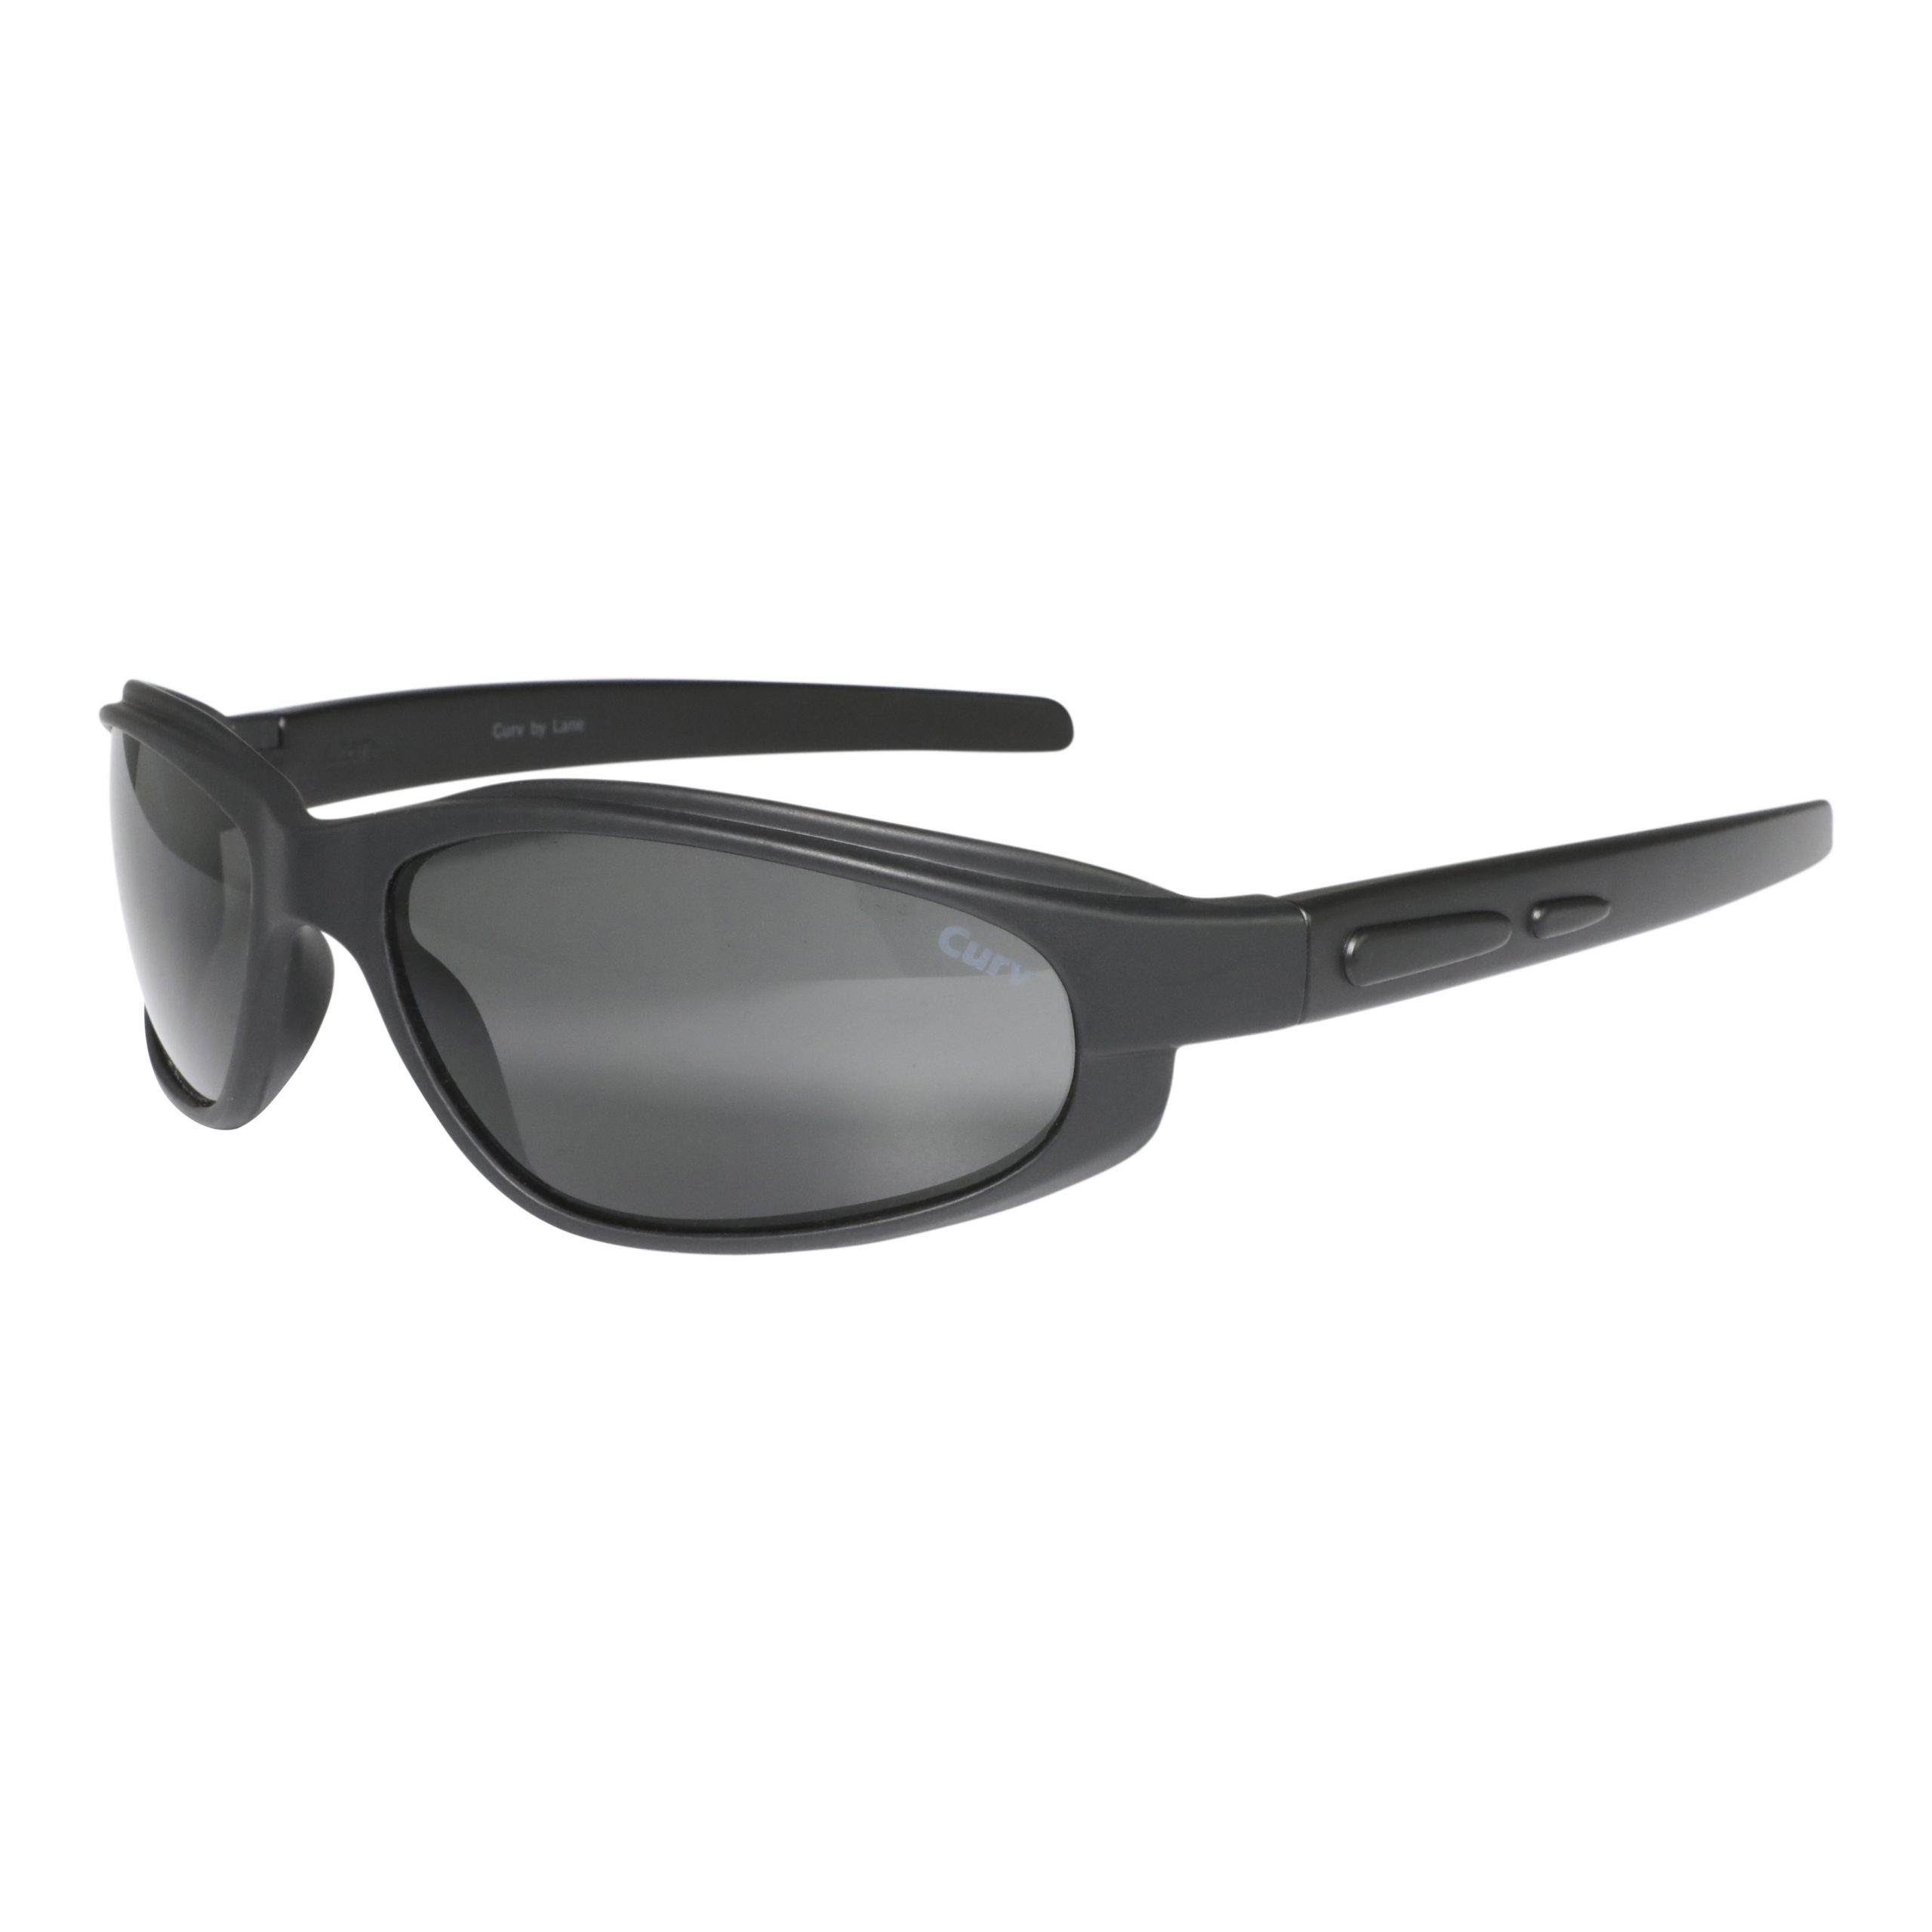 01-17G - CurvEX Black Glossy Sunglasses with Smoke Lenses, Glossy Black Frames and Black Accent